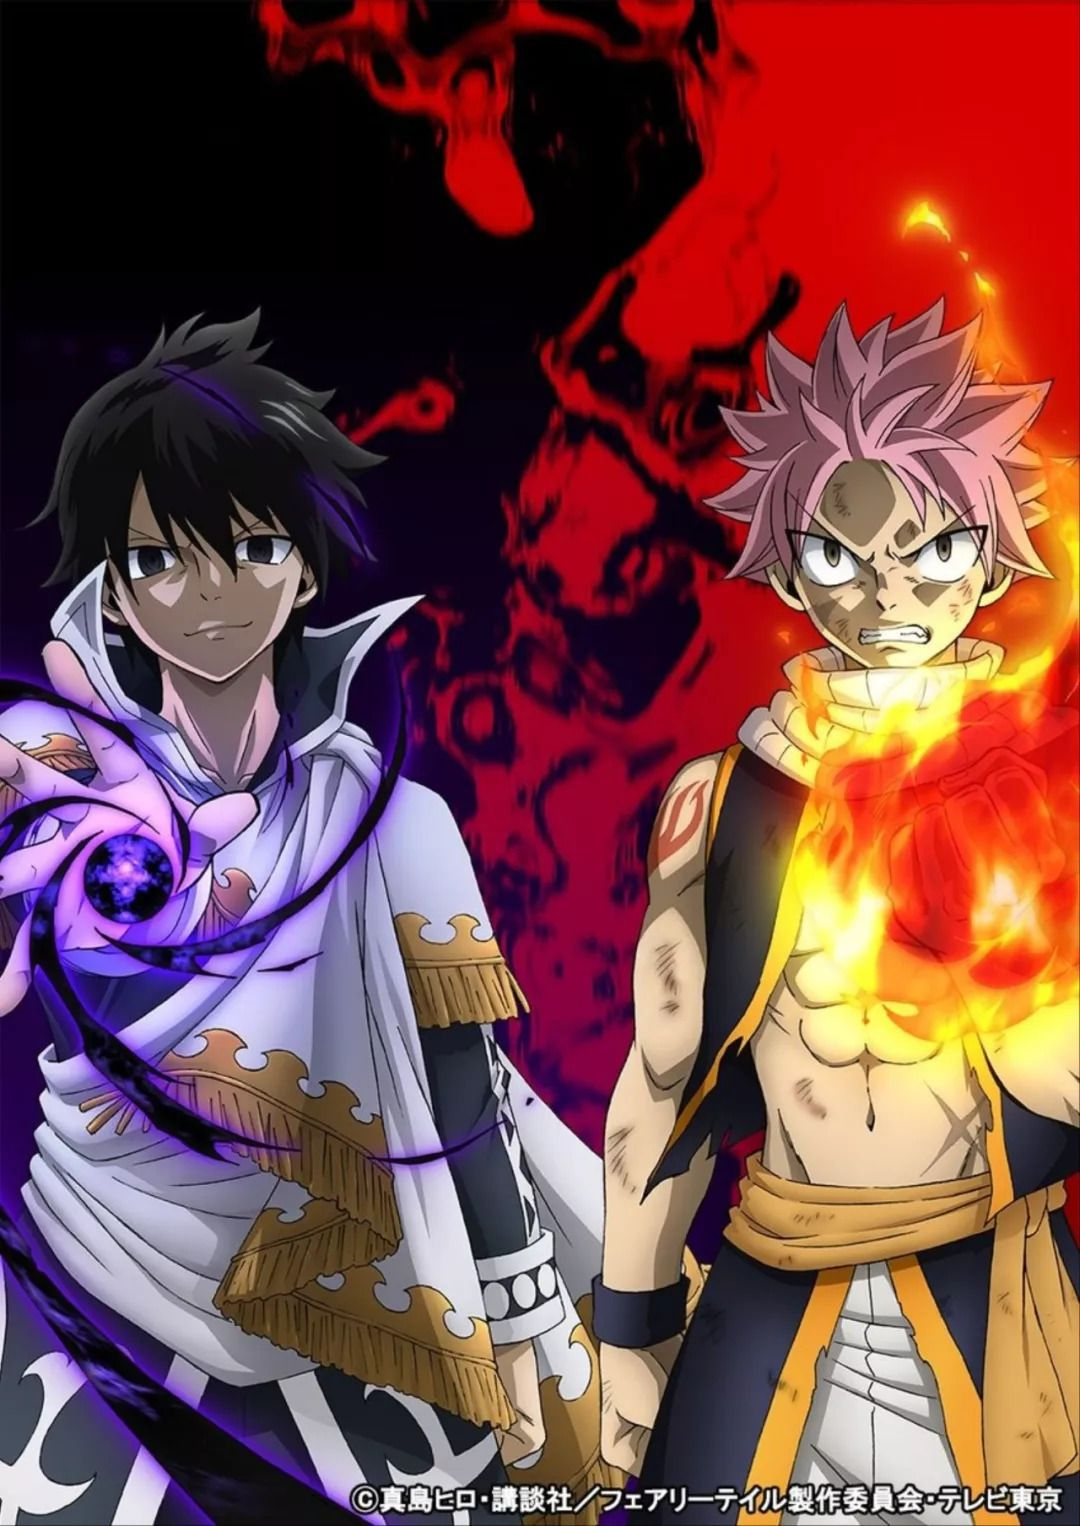 Pin By Jp On Fairy Tail Fairy Tail Pictures Natsu Fairy Tail Fairy Tail Anime